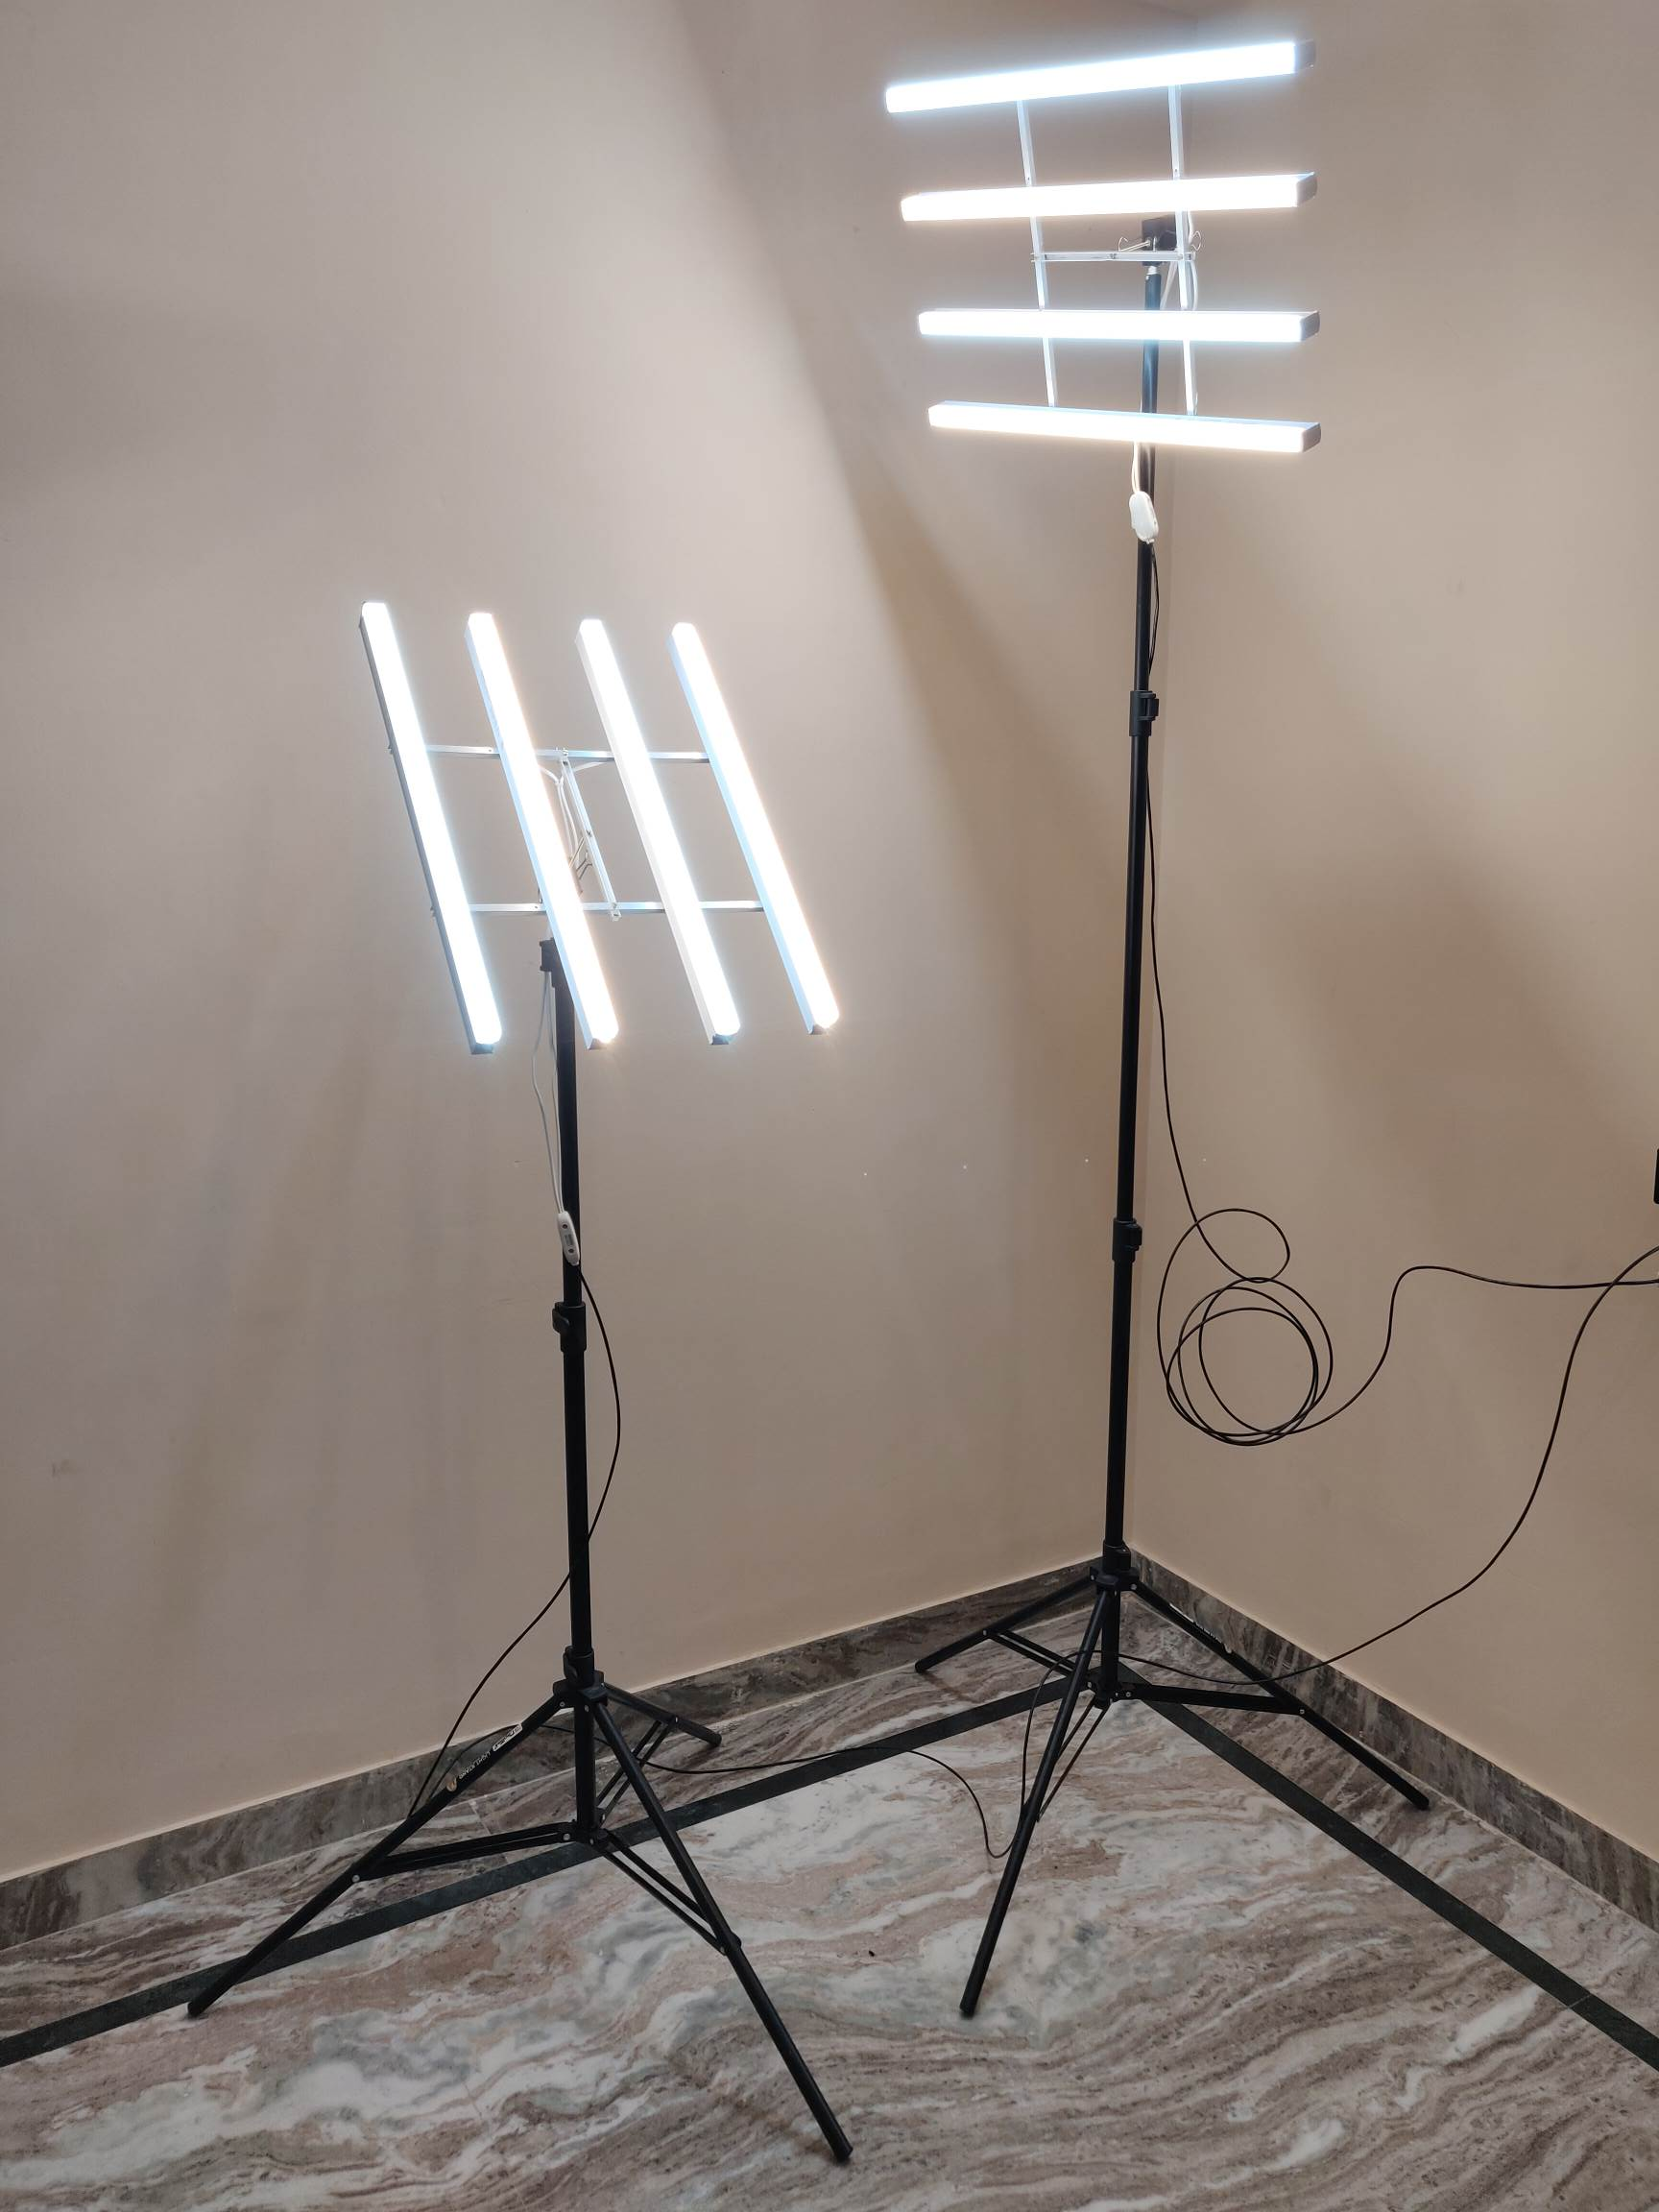 DIY LED Light Panel Mounted on Light Stand